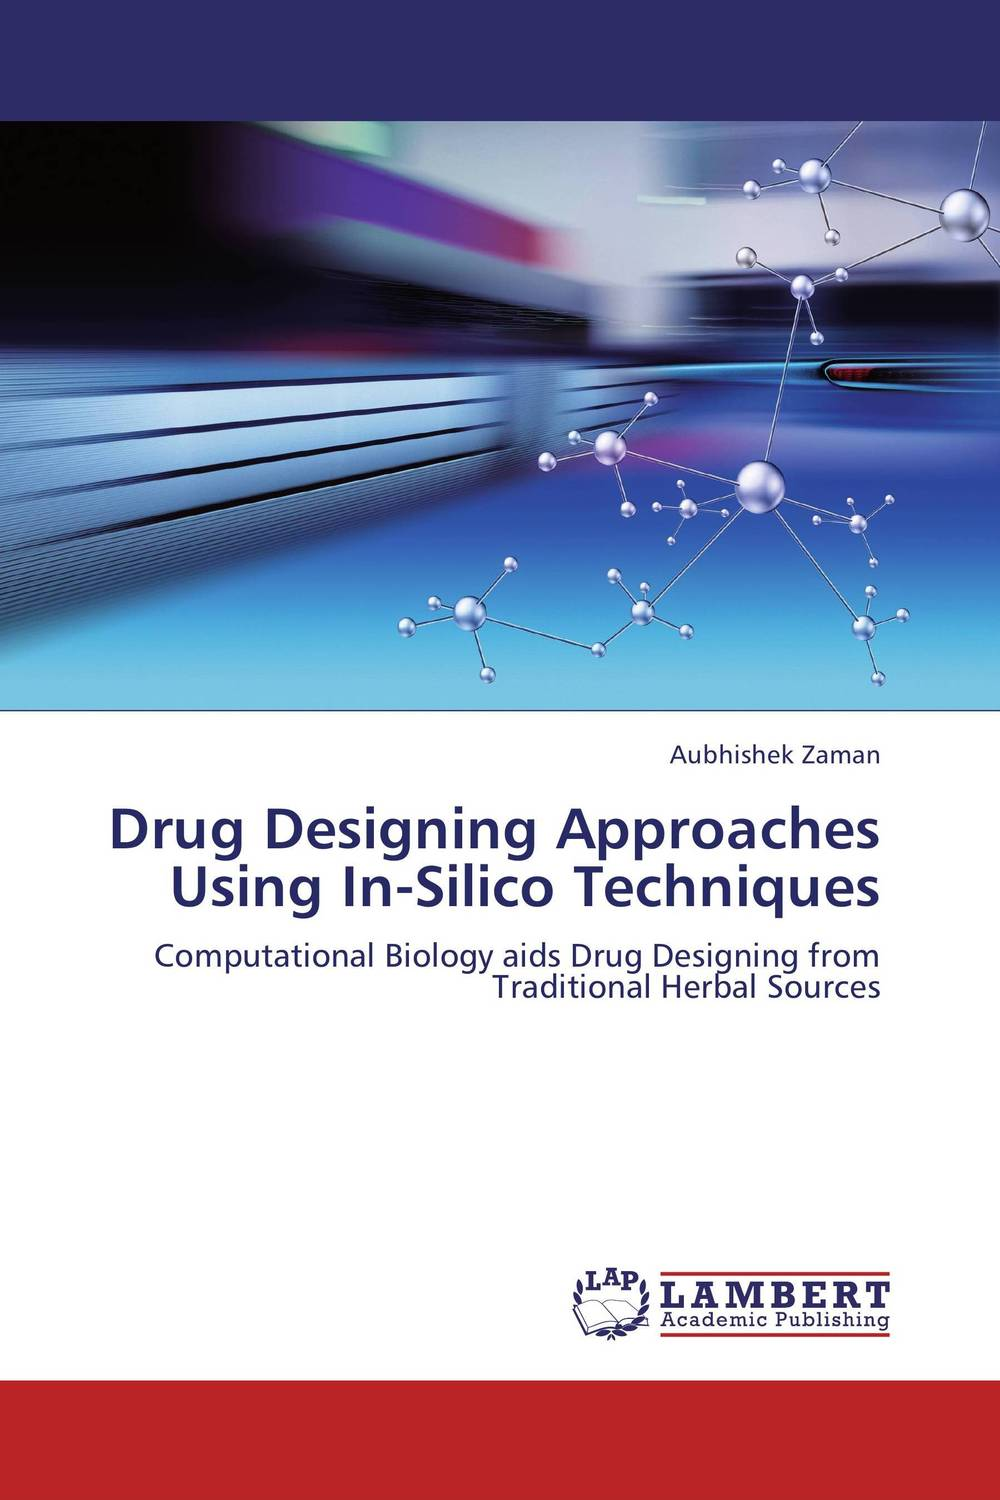 Drug Designing Approaches Using In-Silico Techniques manuscript found in accra